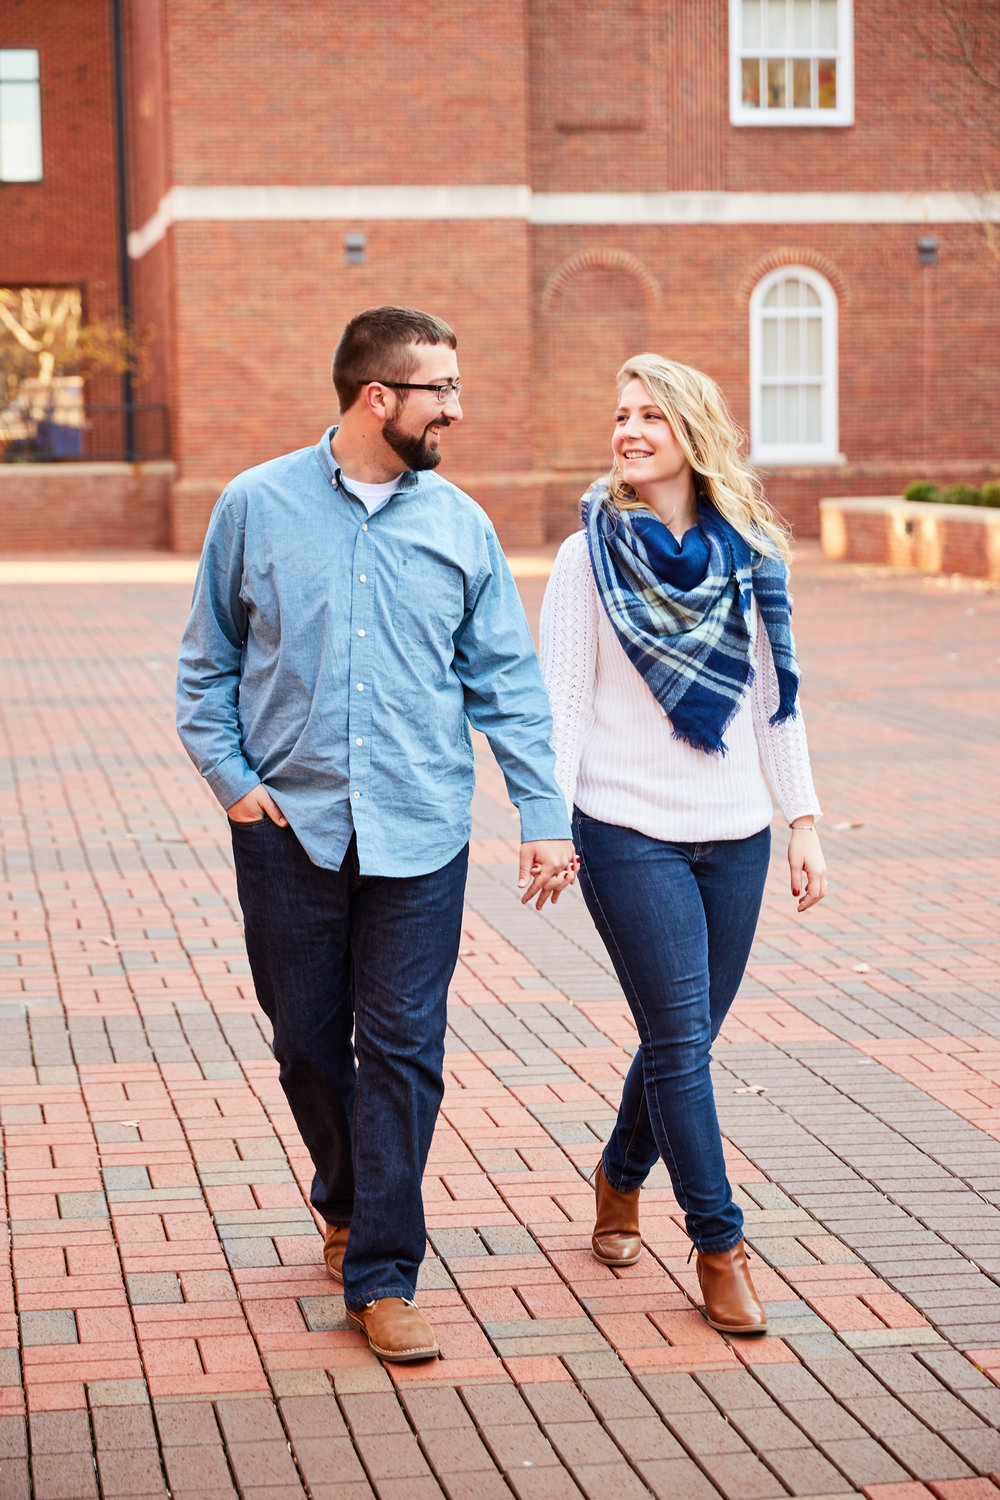 University of Kentucky Lexington Campus Alumni Engagement Photos by St Louis Wedding Photographers Oldani Photography 0 00.jpg